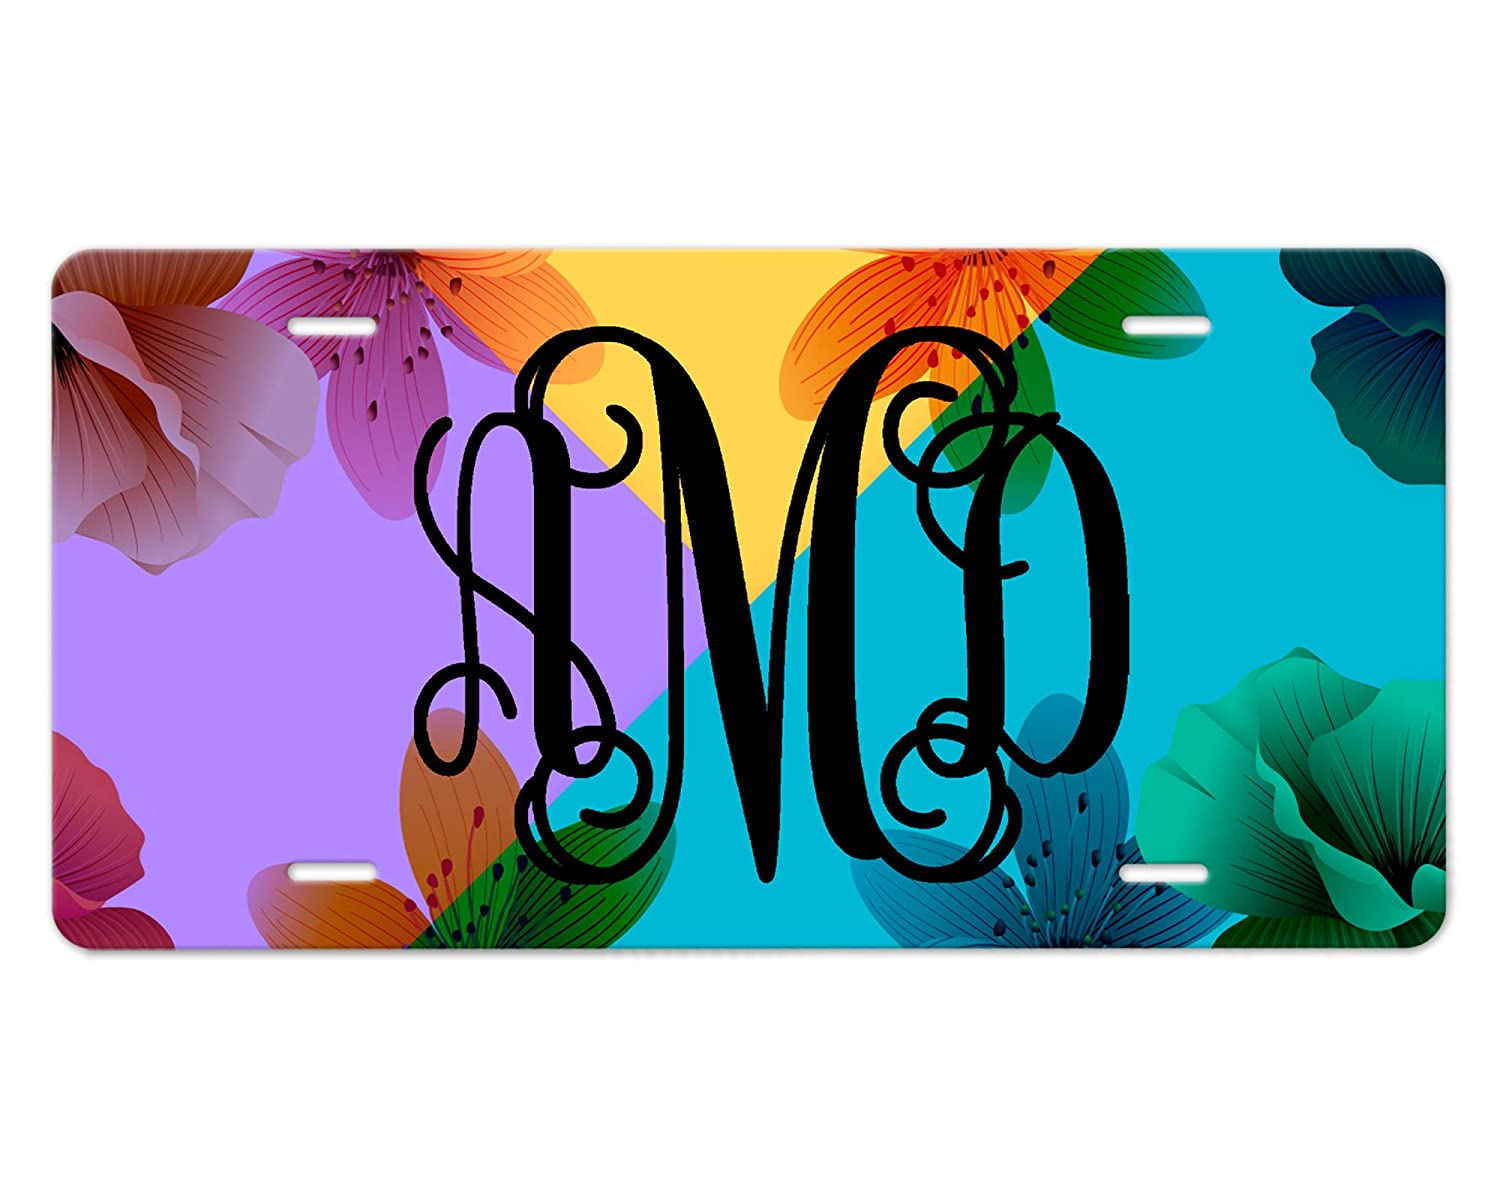 Customizable Award Monogram Front Car Tag Max 81% OFF Floral Design - Yell Purple